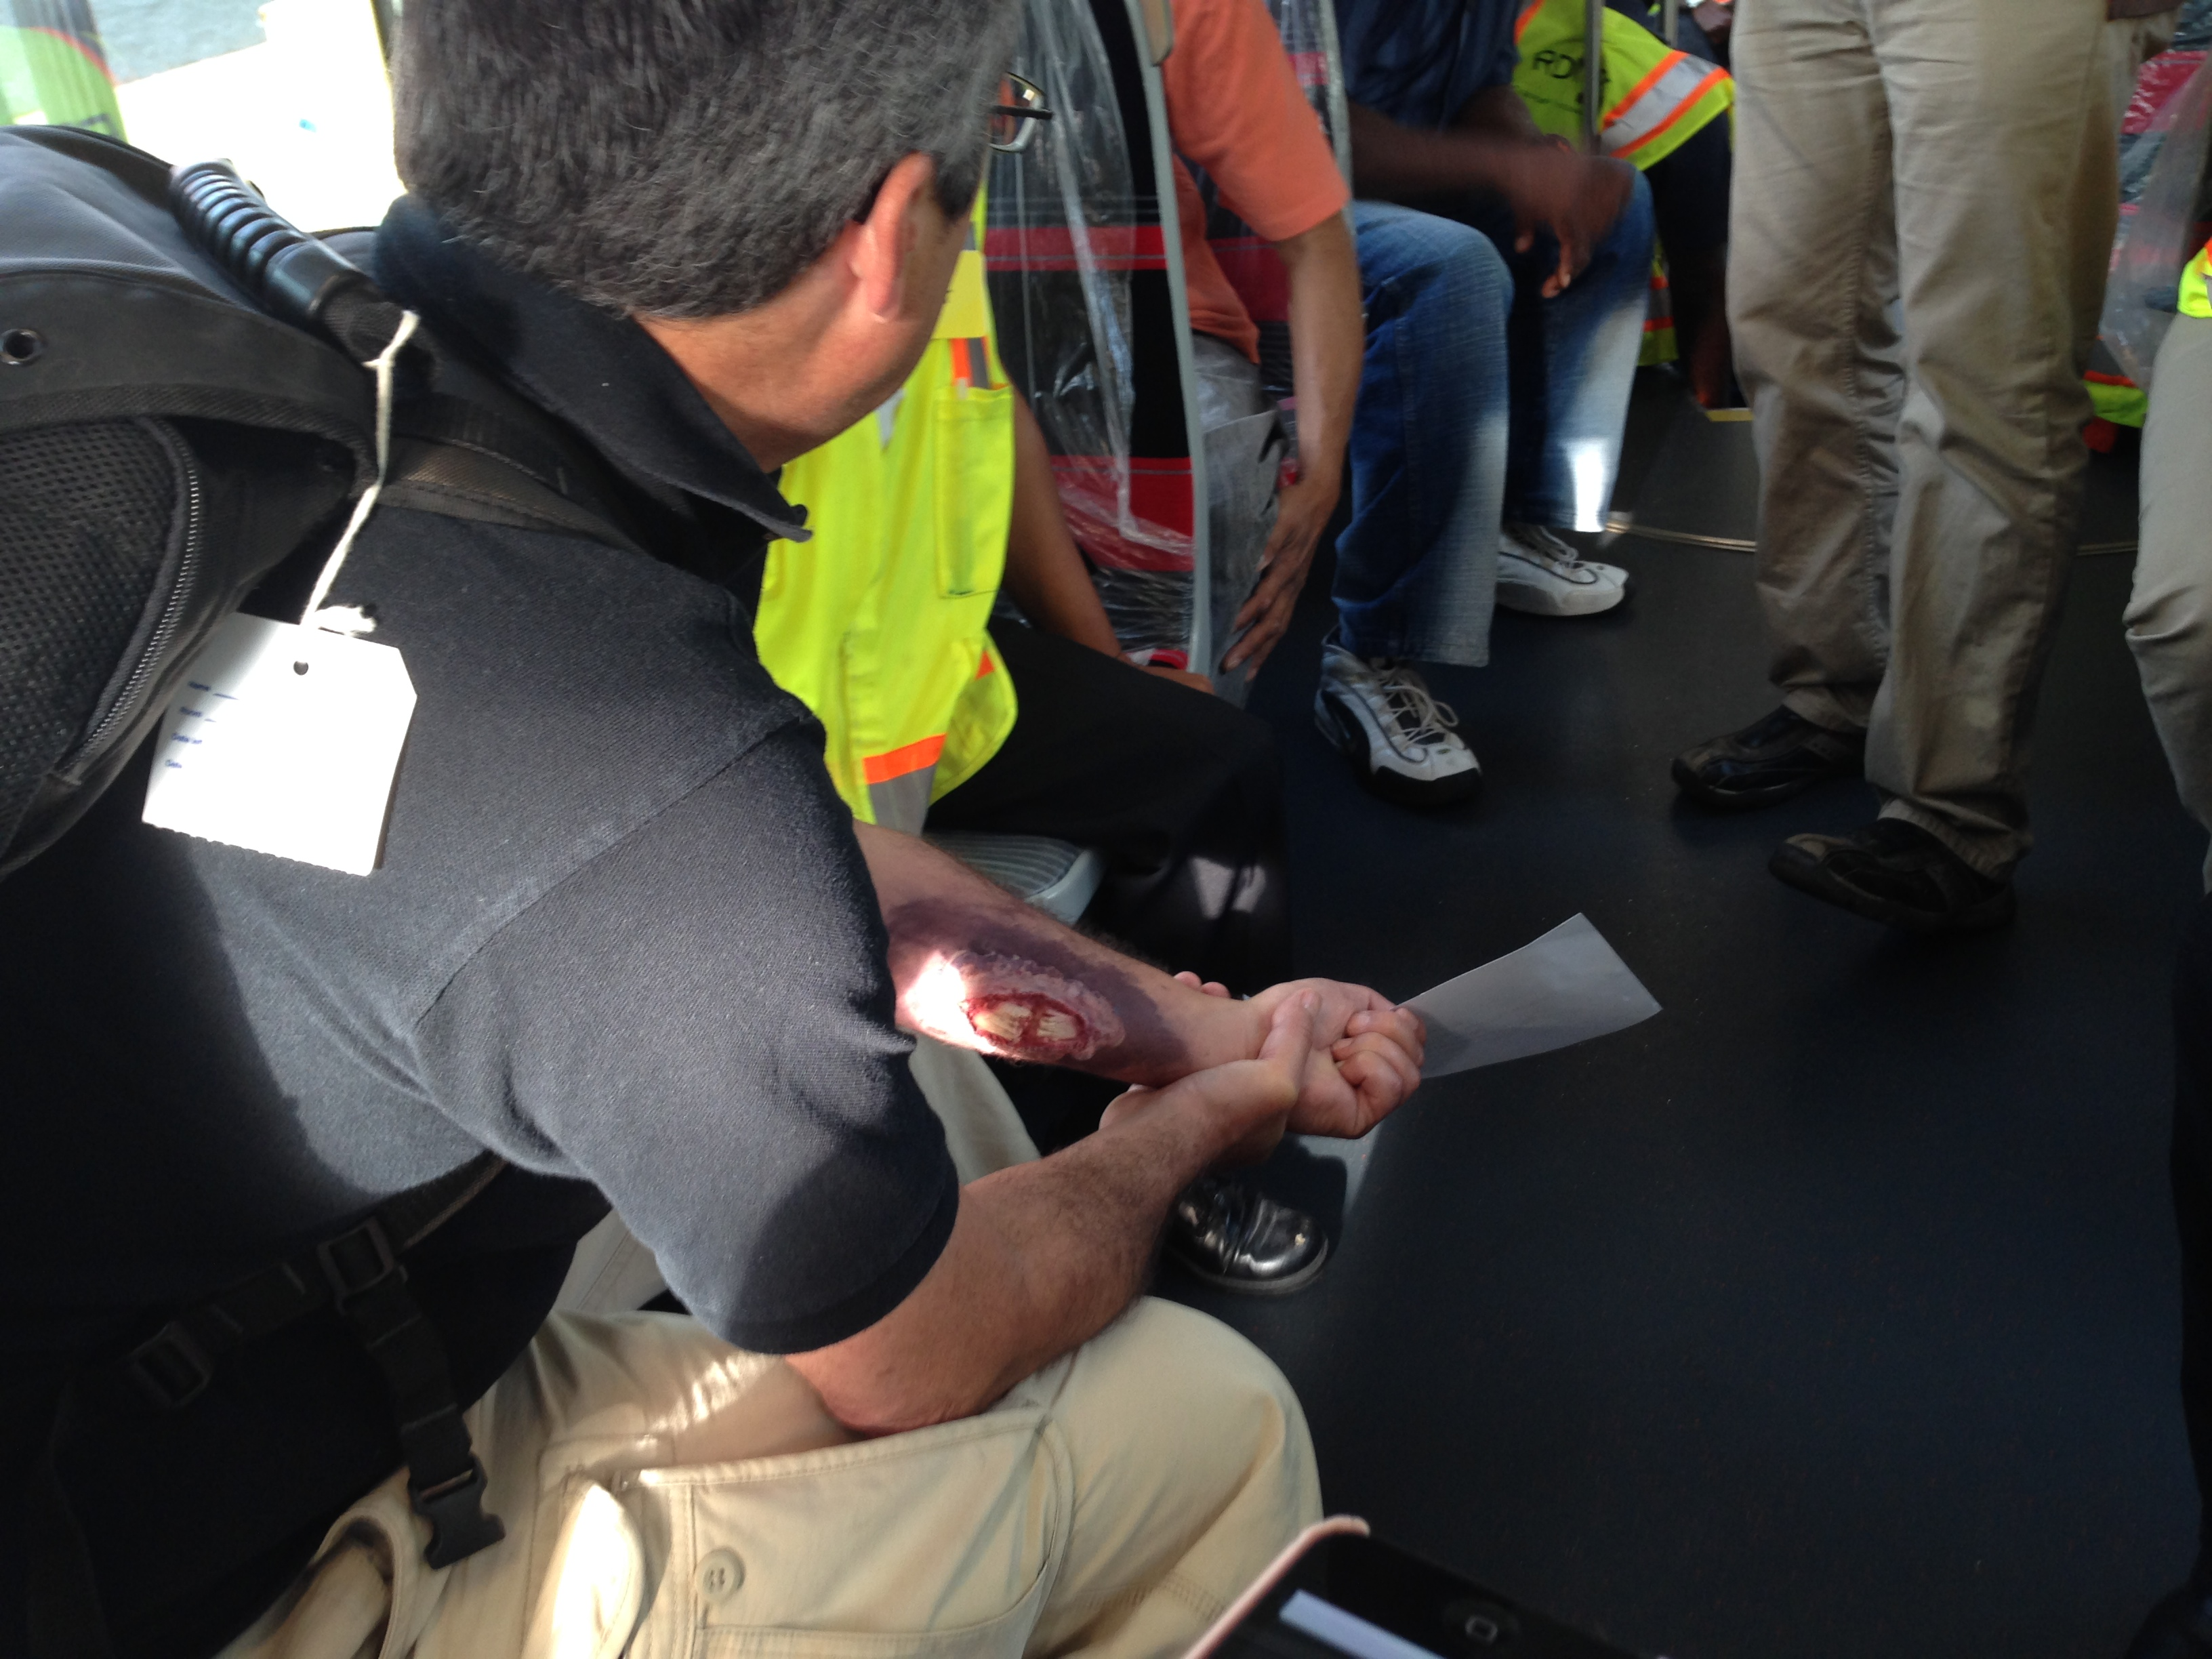 District streetcar derailed Sunday for emergency drill